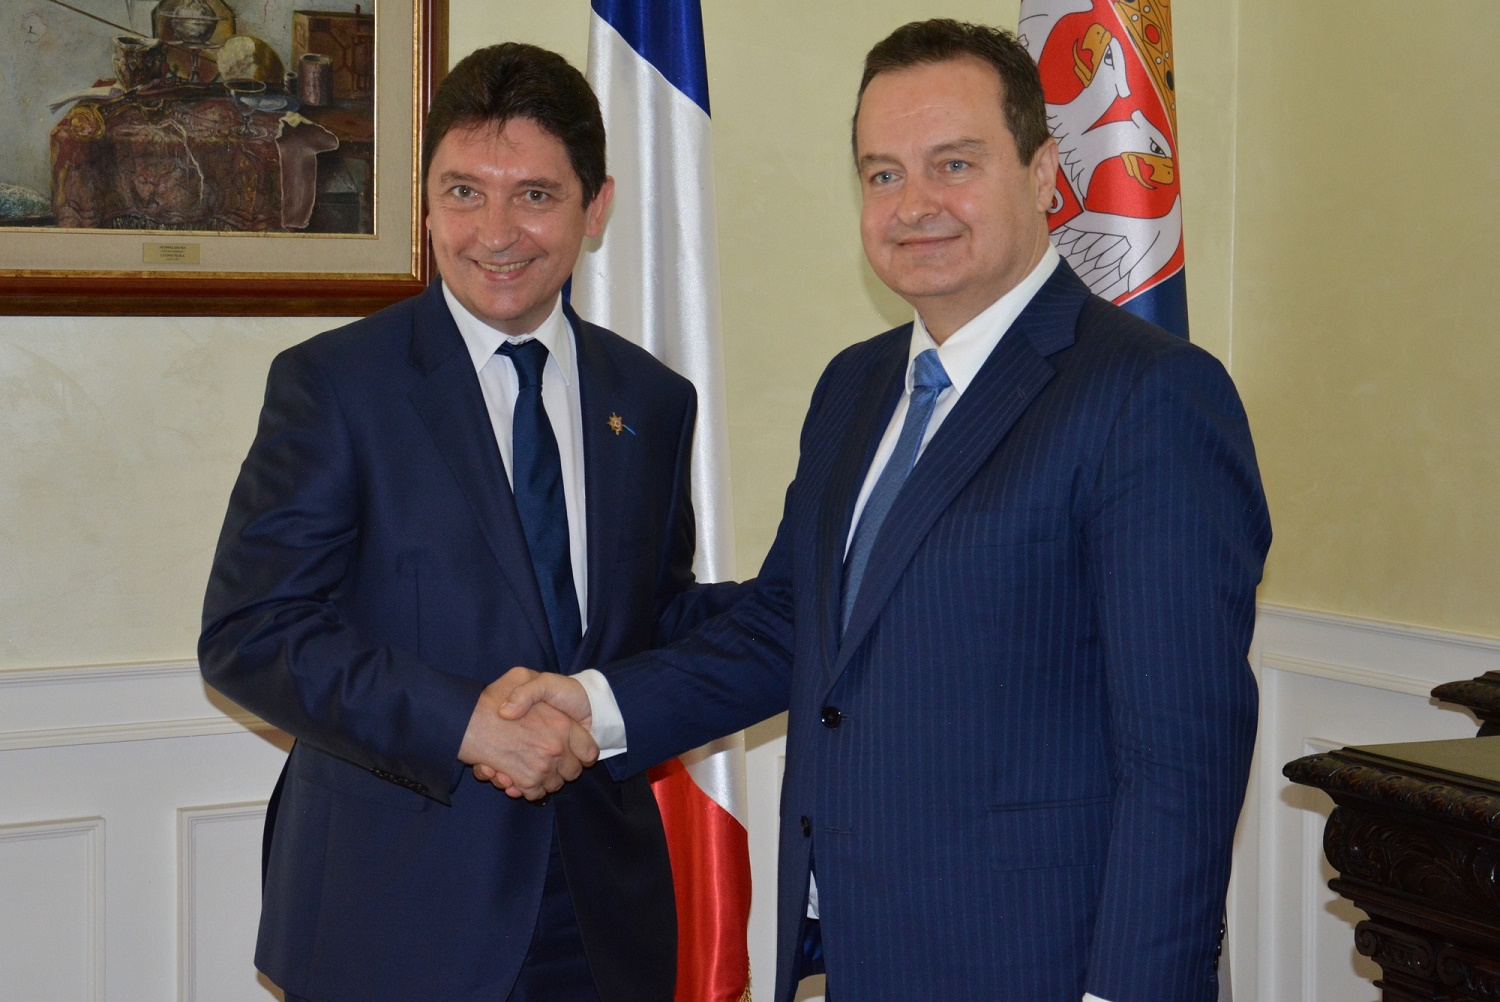 Ivica Dacic and Olivier Cadic